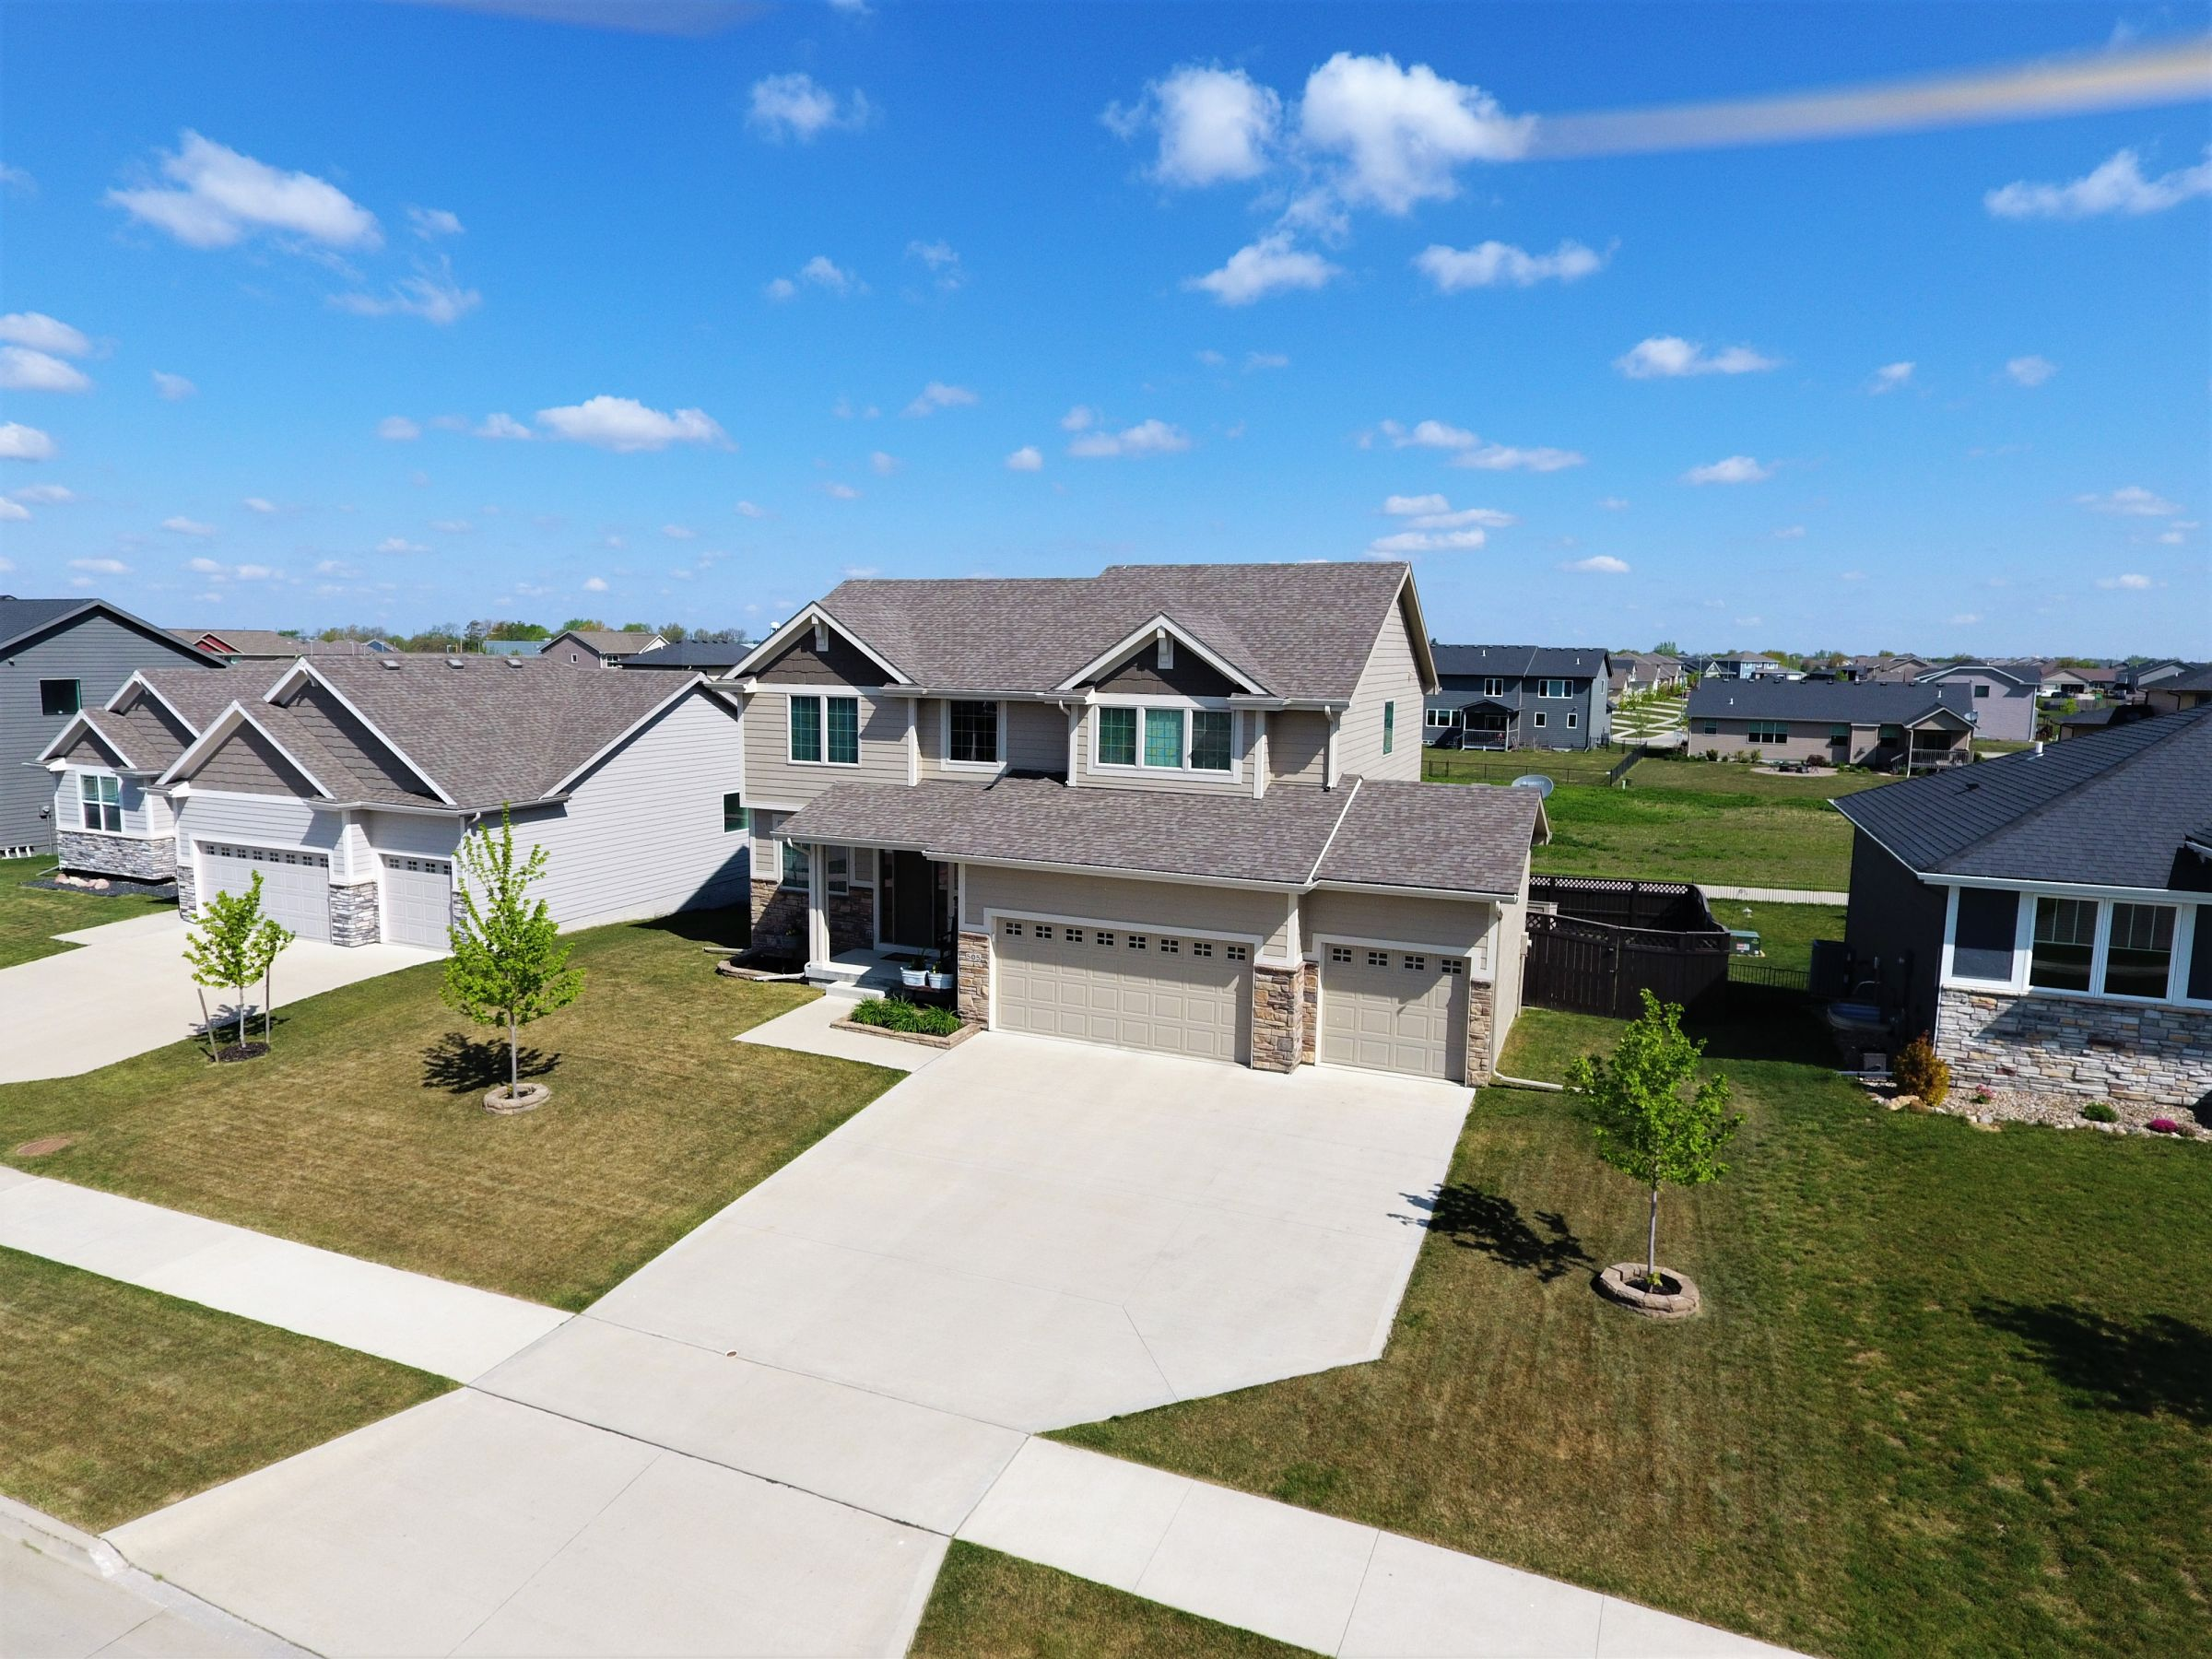 residential-dallas-county-iowa-0-acres-listing-number-15515-0-2021-05-06-213446.jpg